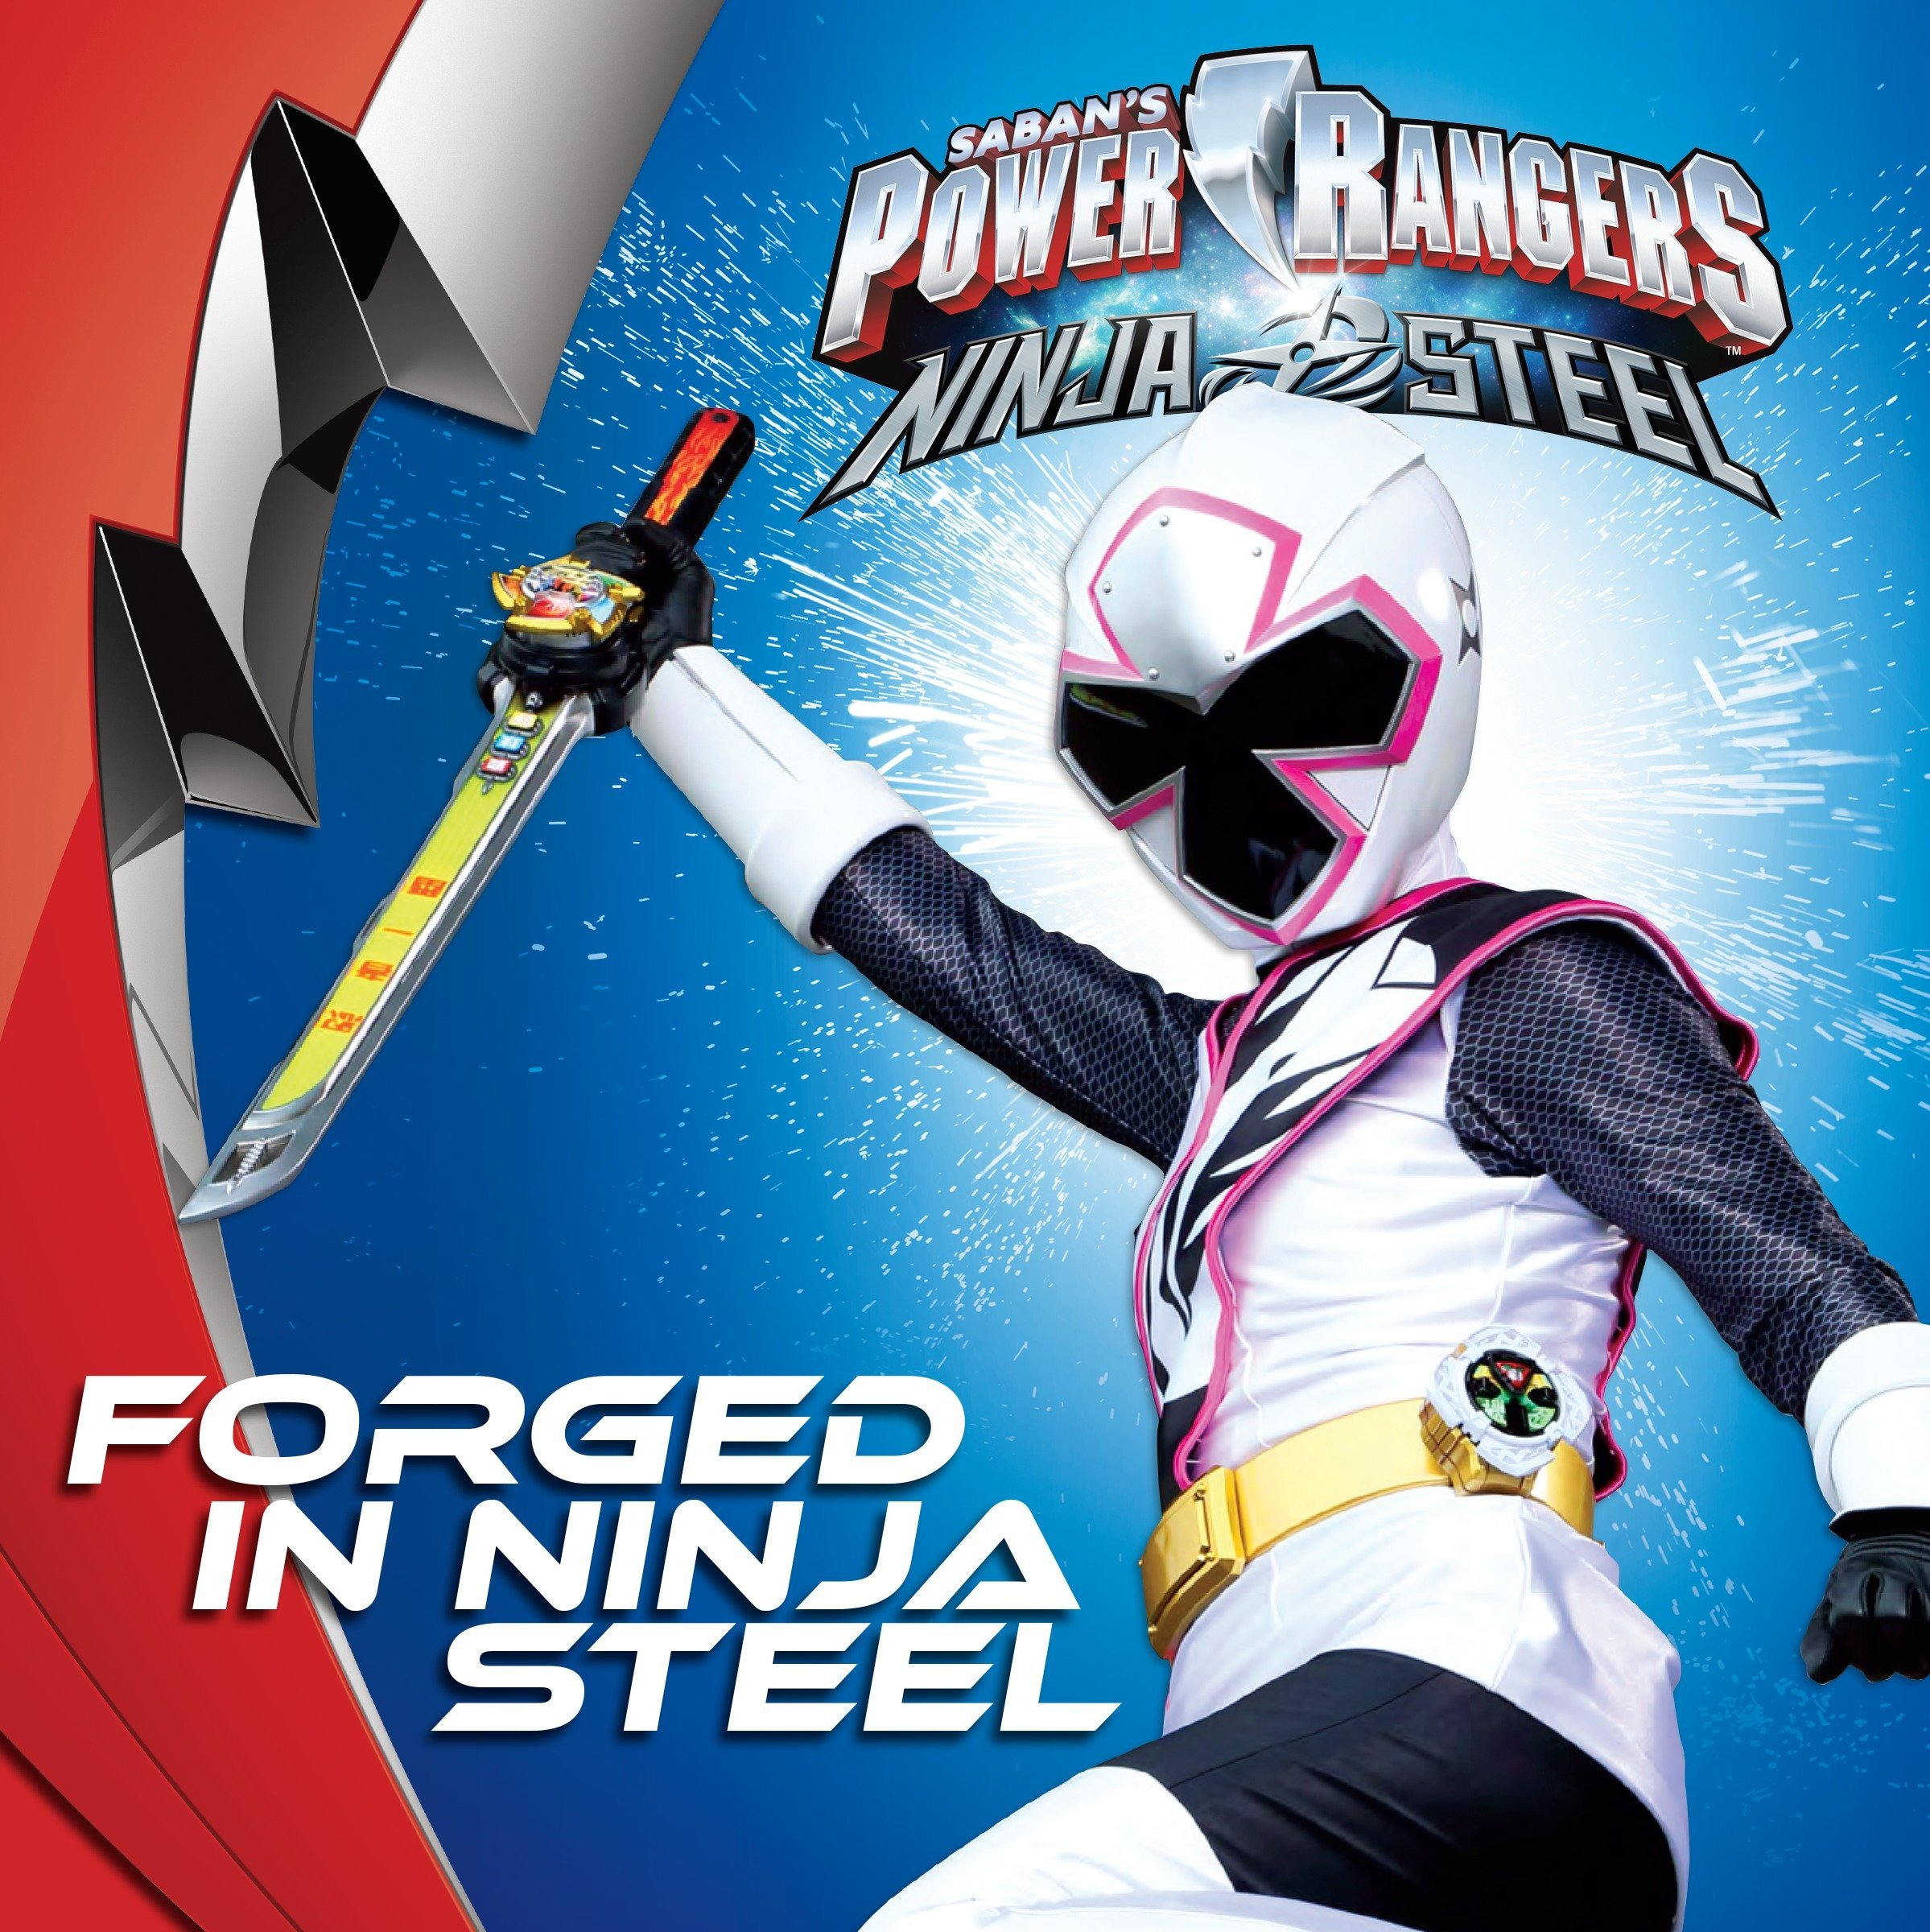 Amazon.com: Forged in Ninja Steel (Power Rangers ...